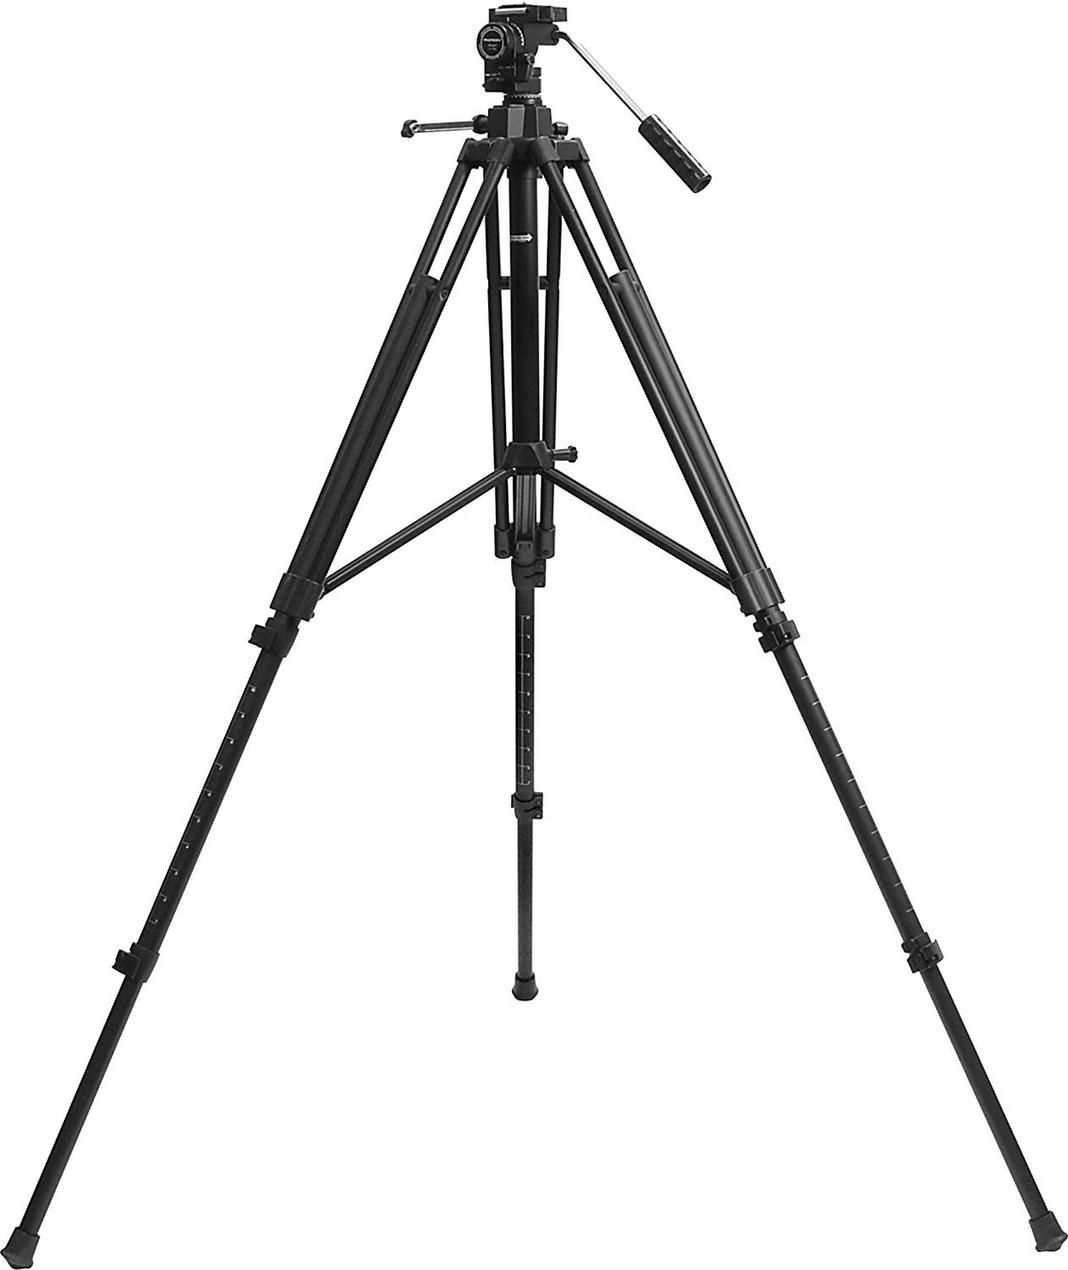 Orion Paragon-Plus XHD Extra Heavy-Duty DSLR Camera tripod for beginner Astrophotographers, affordable support for amateur astrophotography. How to photograph the Milky Way and deep sky objects with a DSLR camera